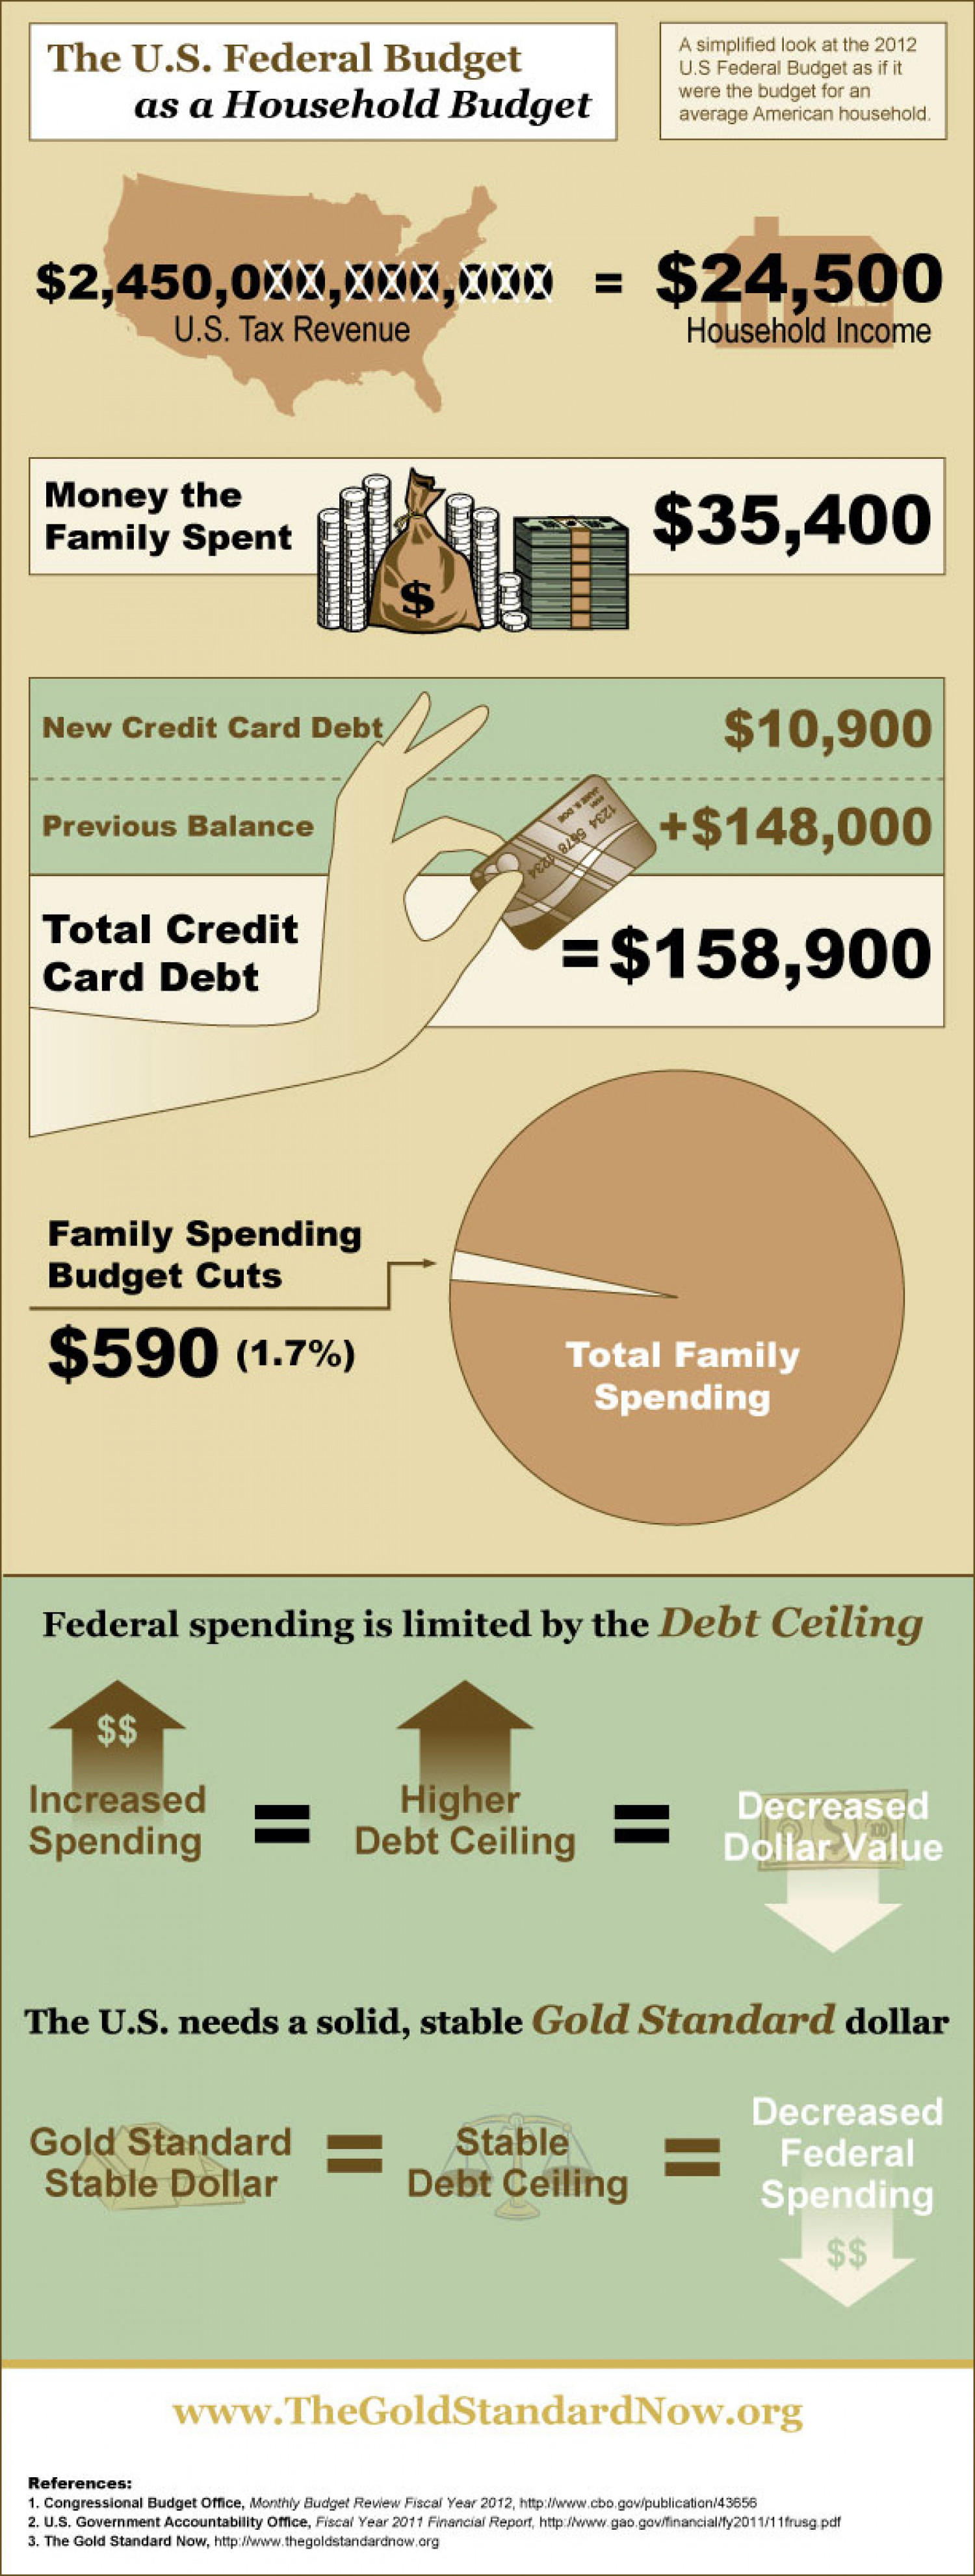 U.S. Federal Budget as a Household Budget Infographic